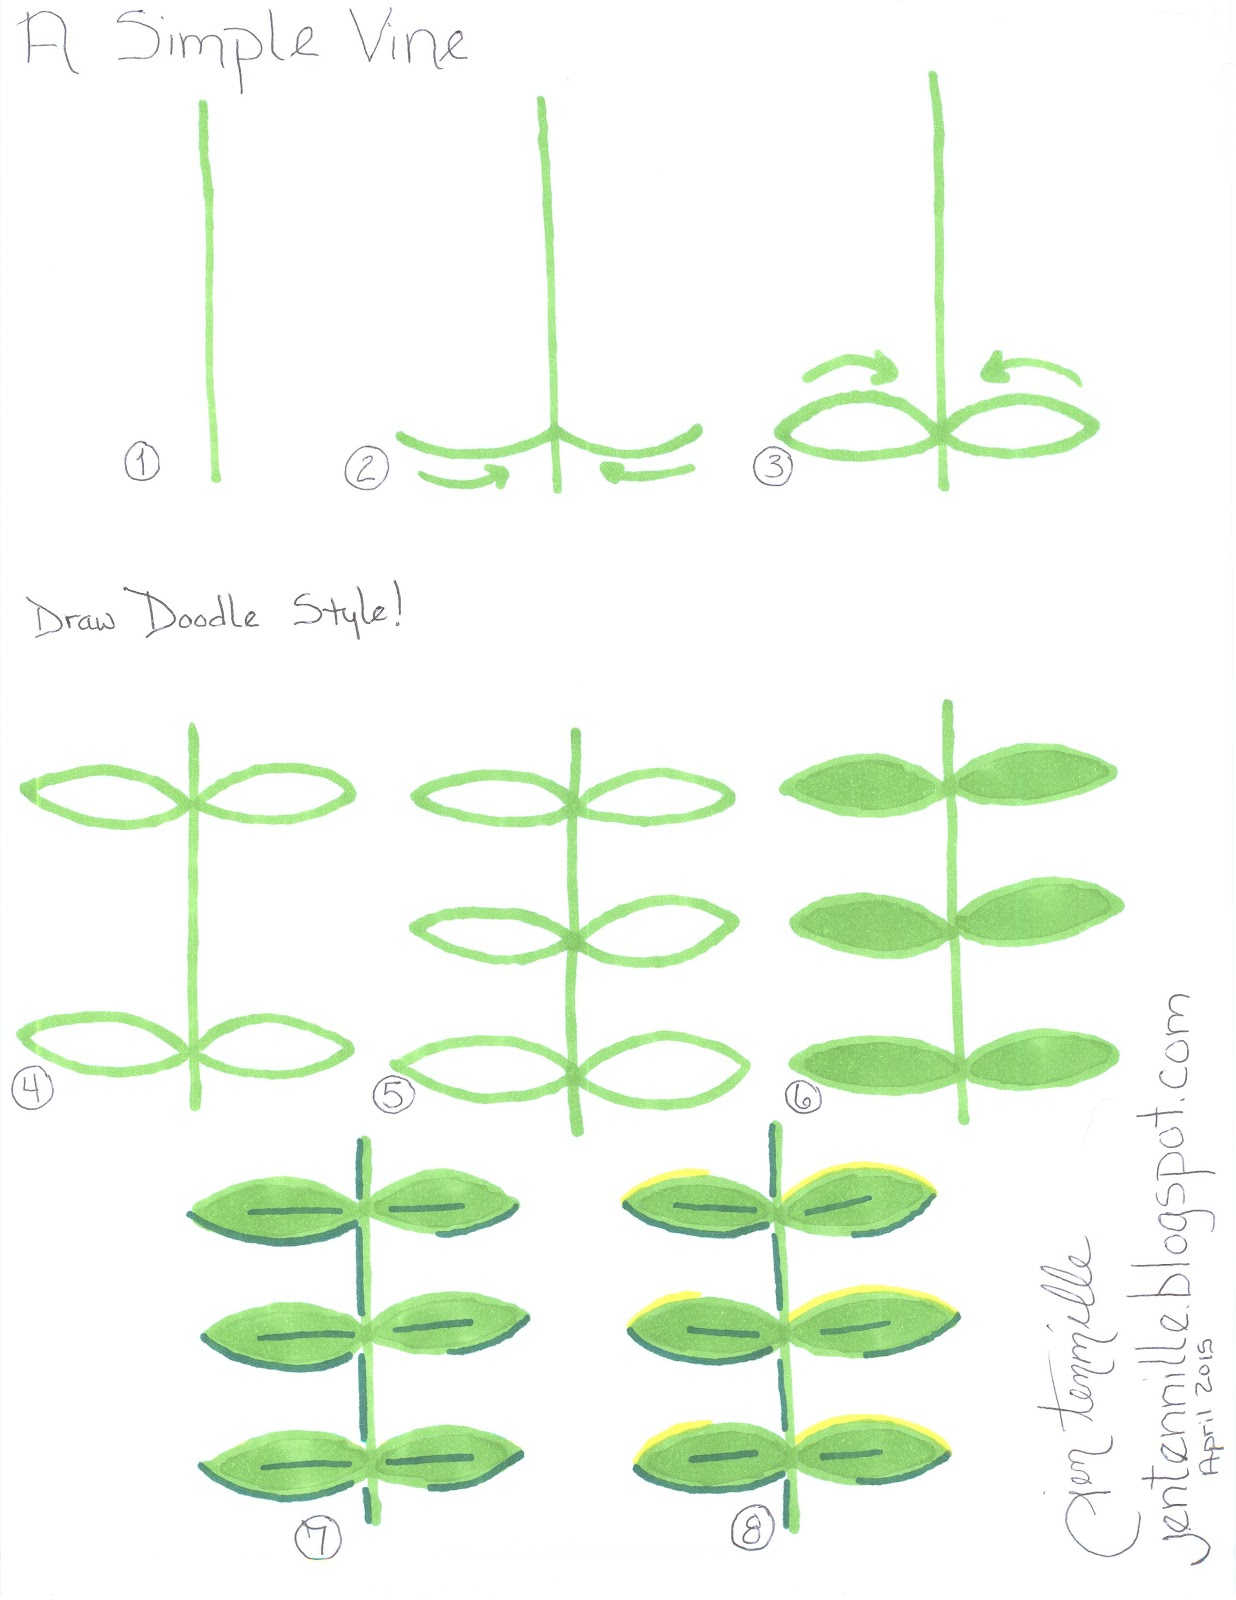 How to draw a simple climbing vine.